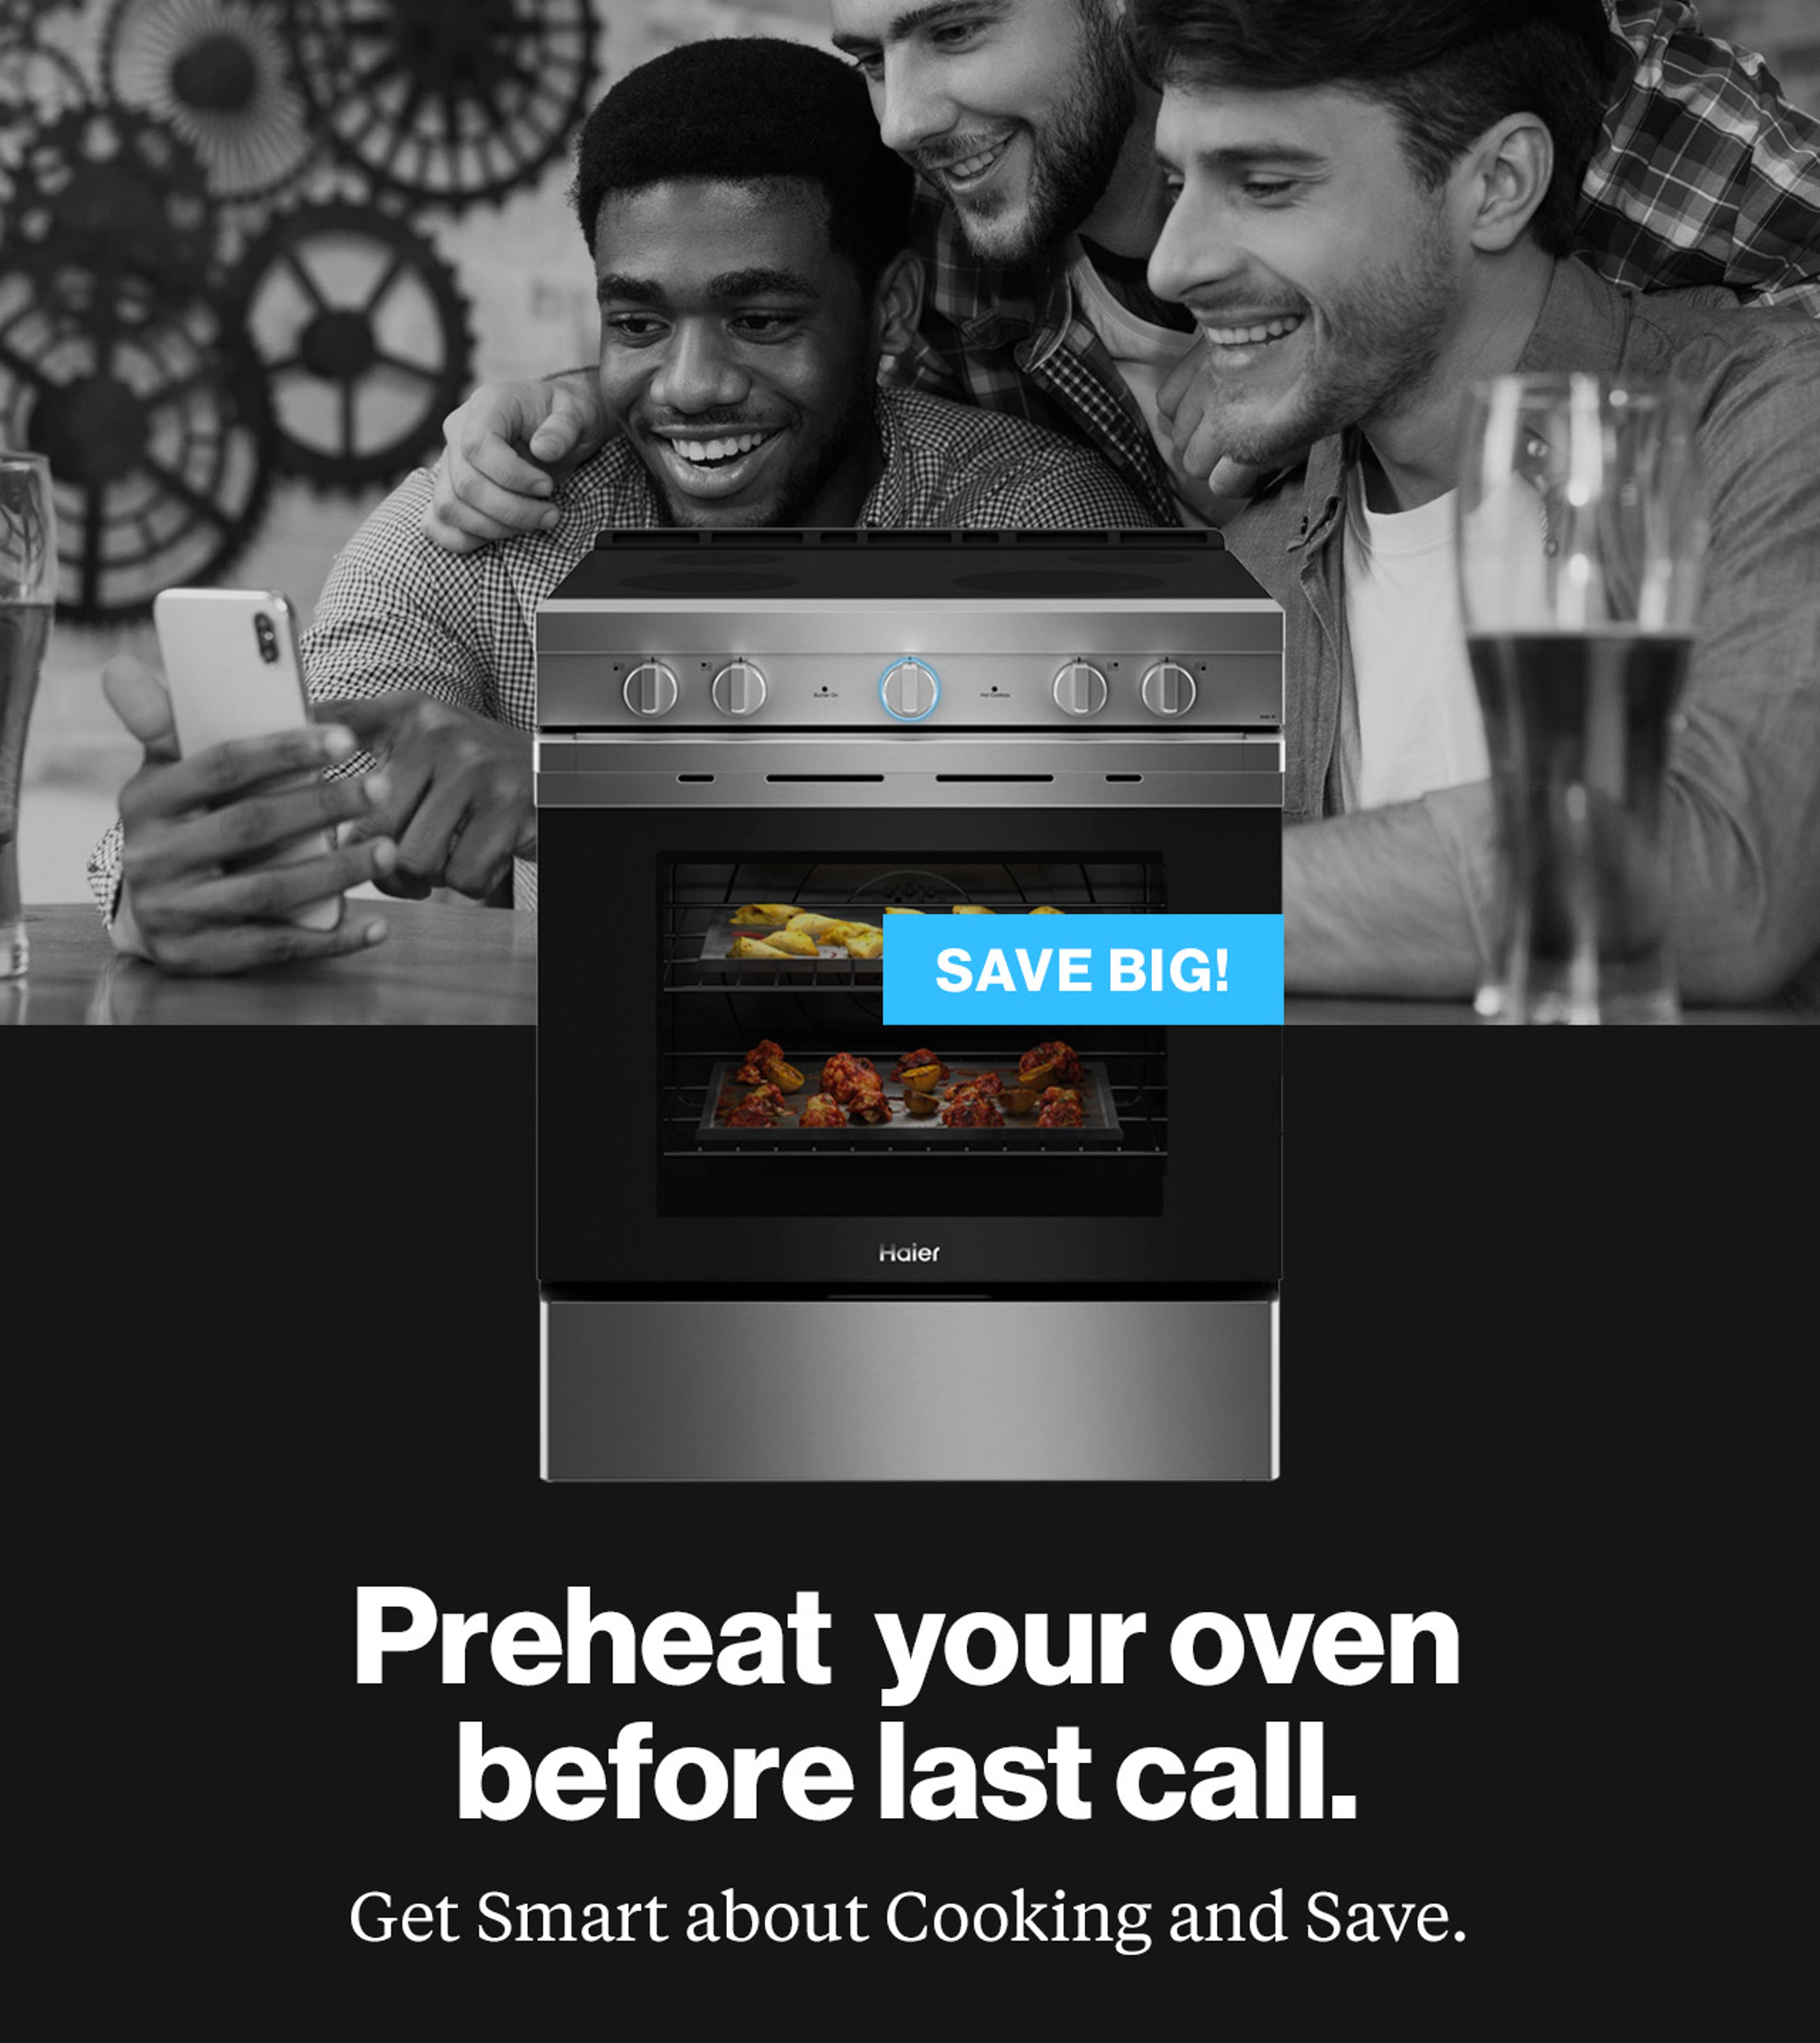 Preheat your oven before last call. Get smart about cooking and save.